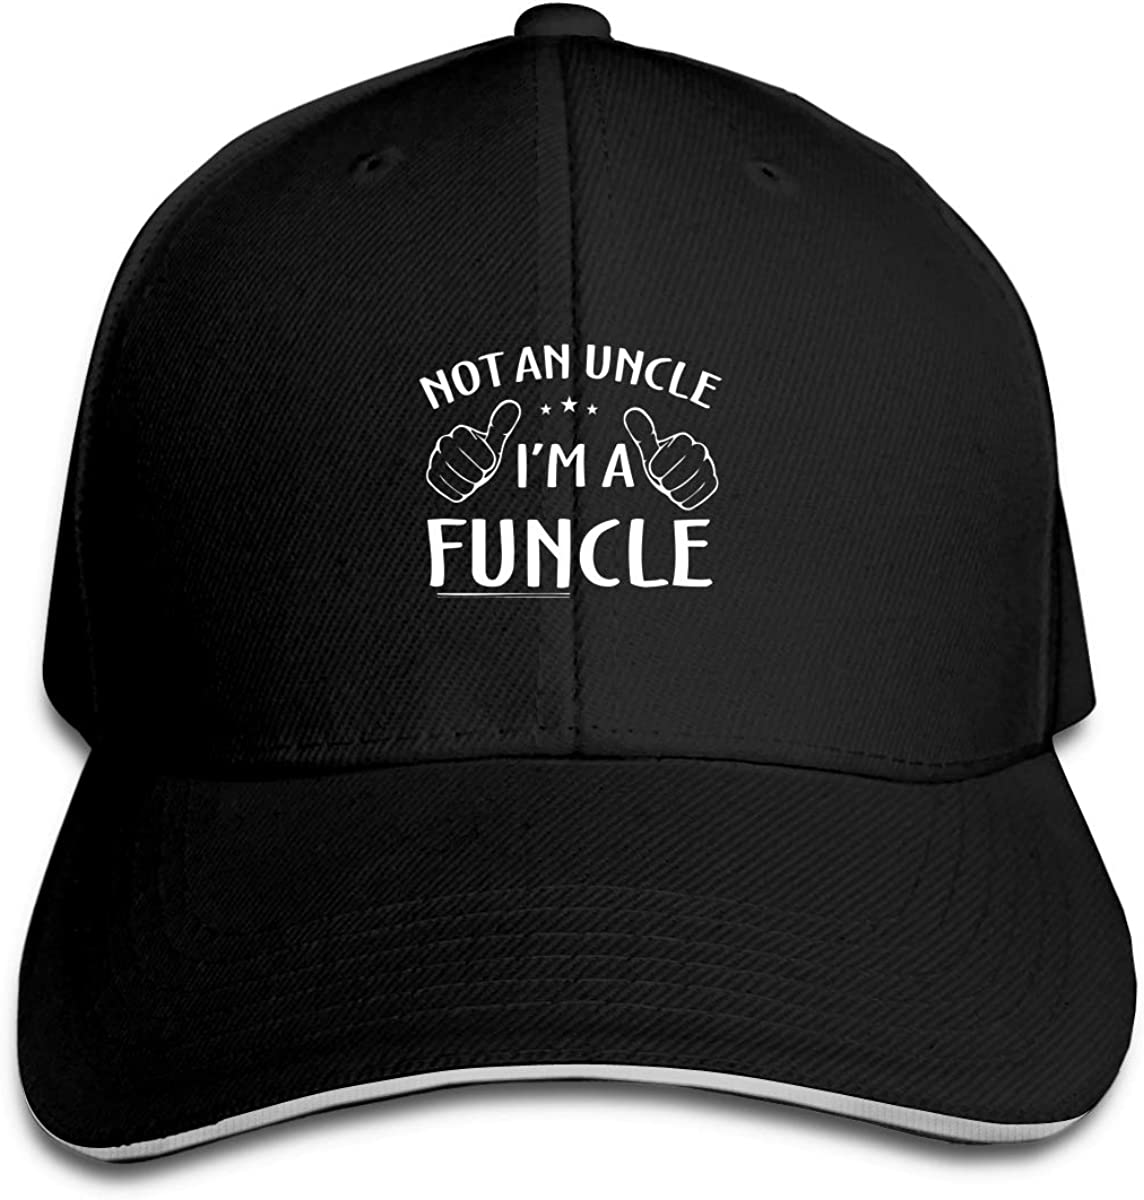 Not an Uncle Im A Funcle Classic Adjustable Cotton Baseball Caps Trucker Driver Hat Outdoor Cap Black